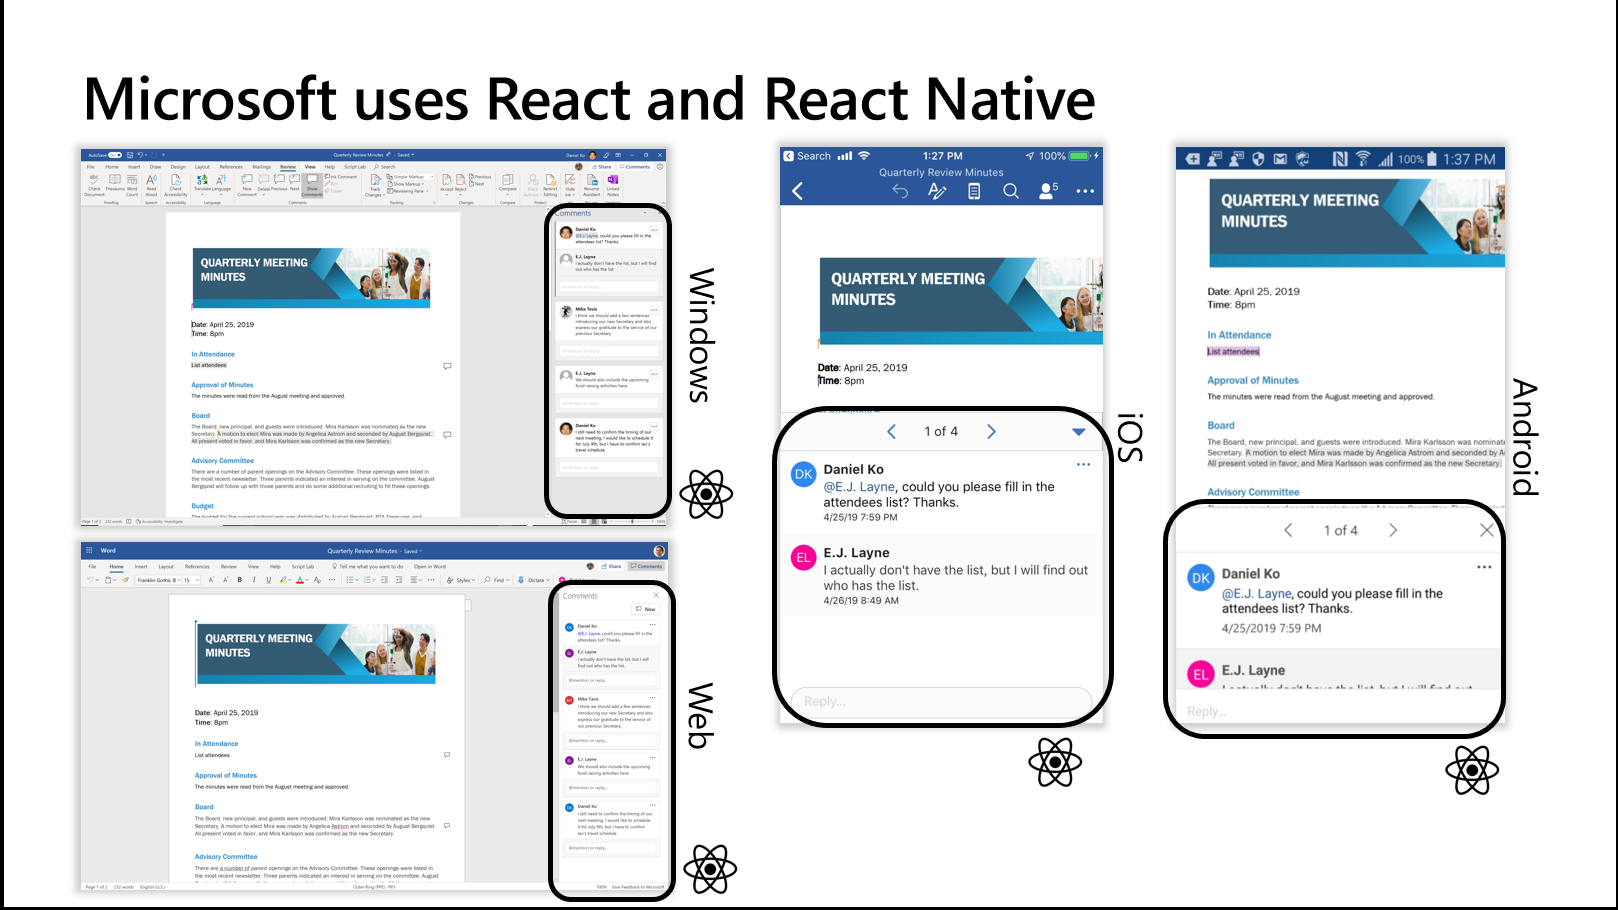 Microsoft uses react native to share code between different platforms